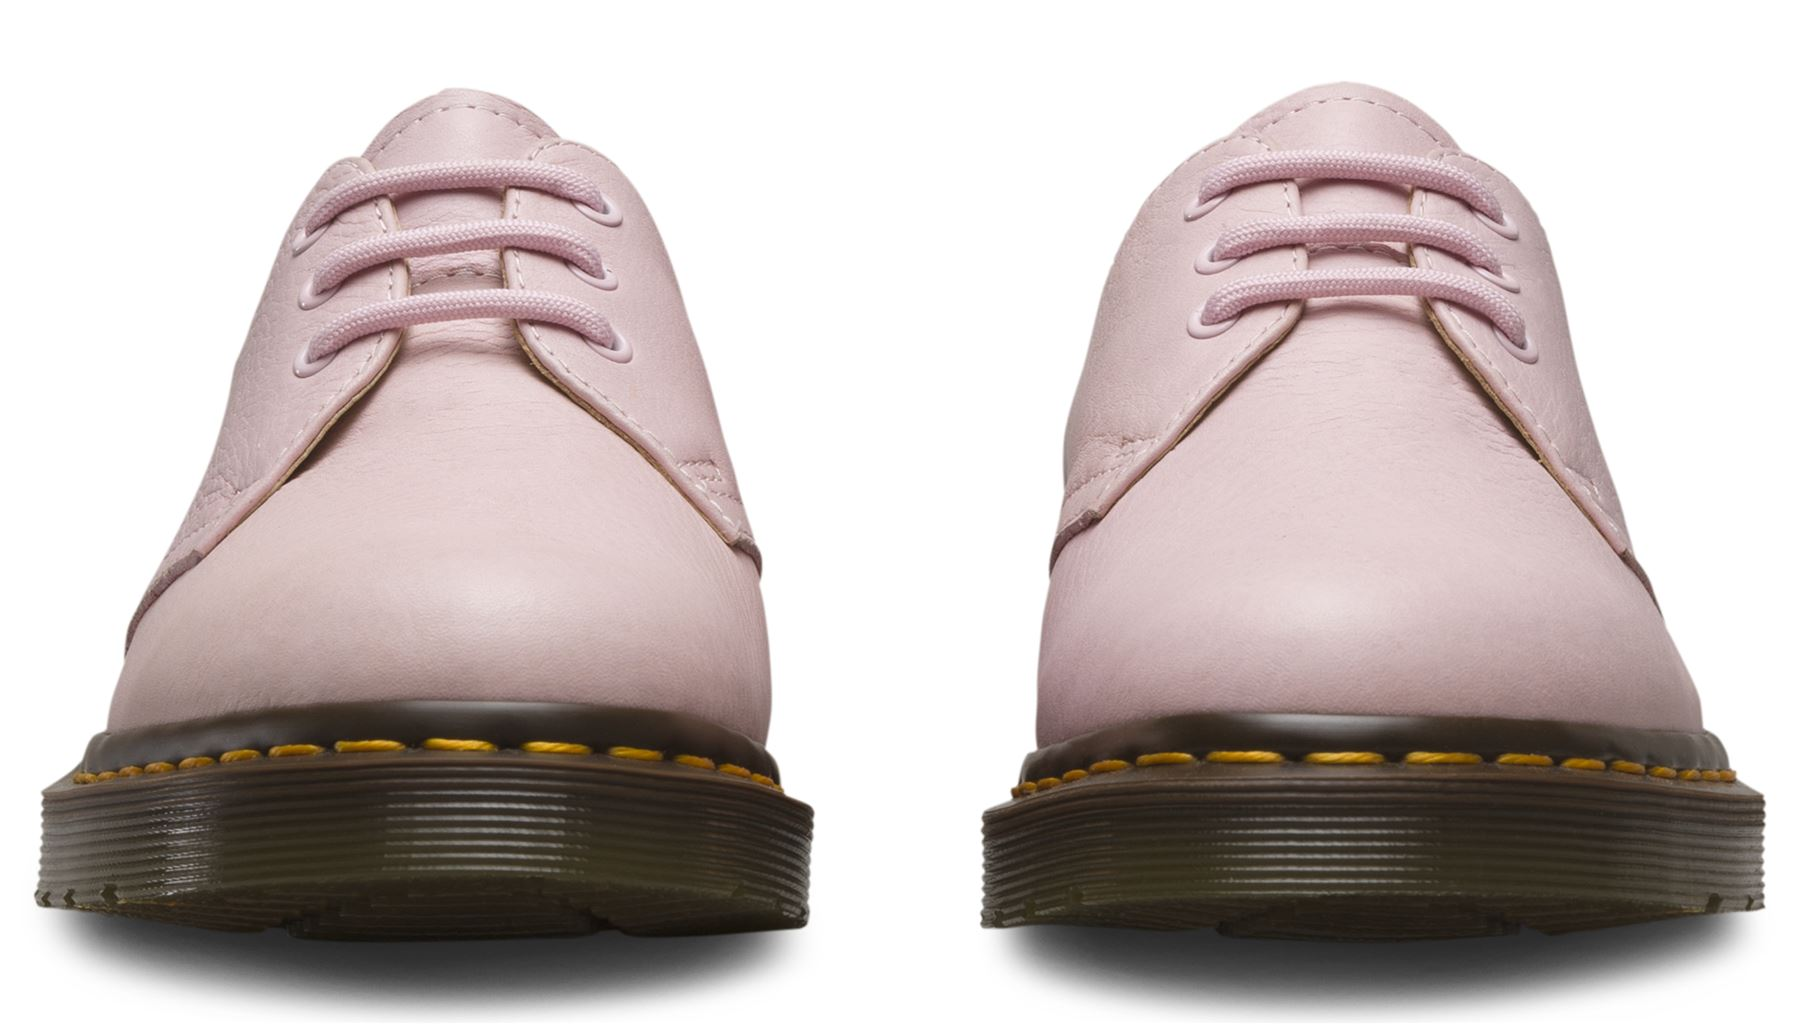 Dr-Martens-Ladies-1461-Virginia-Soft-Nappa-Leather-